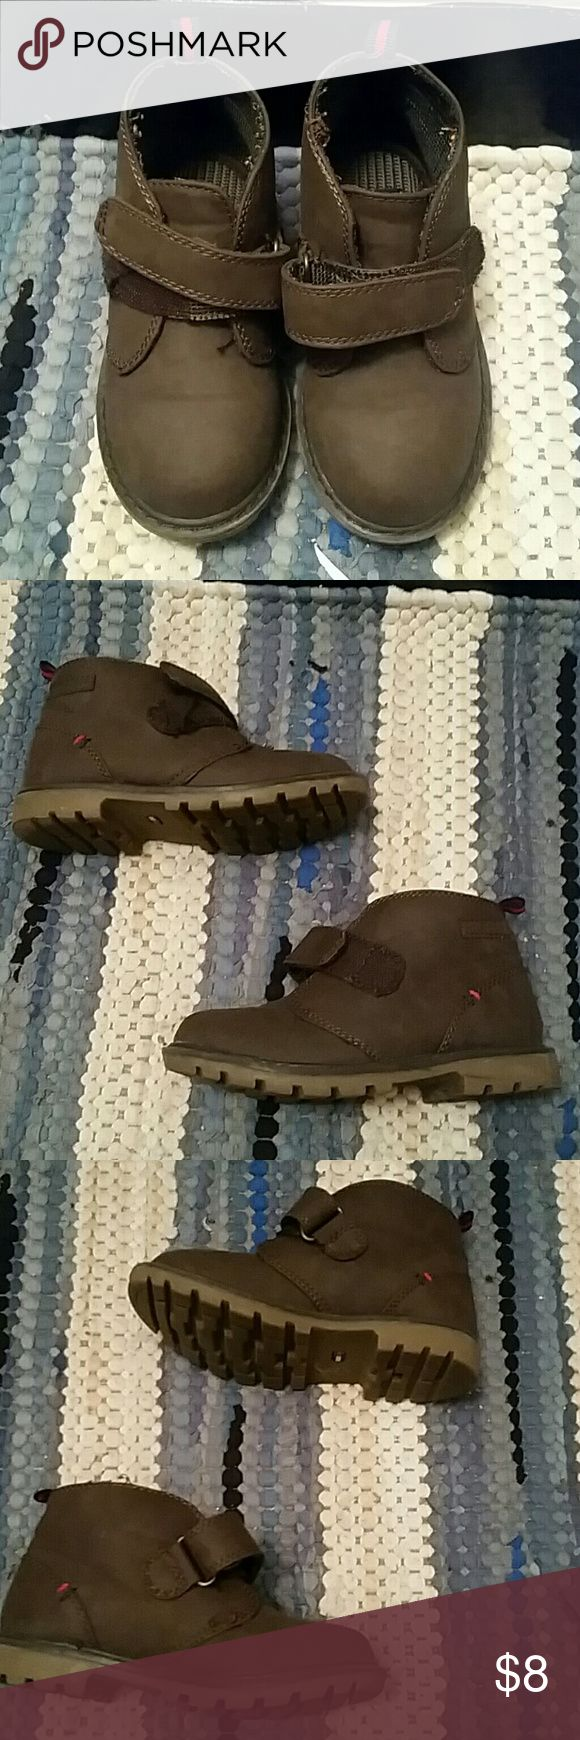 Little boys Tommy Hilfiger boot Great condition little boys Tommy Hilfiger brown boots Tommy Hilfiger Shoes Boots